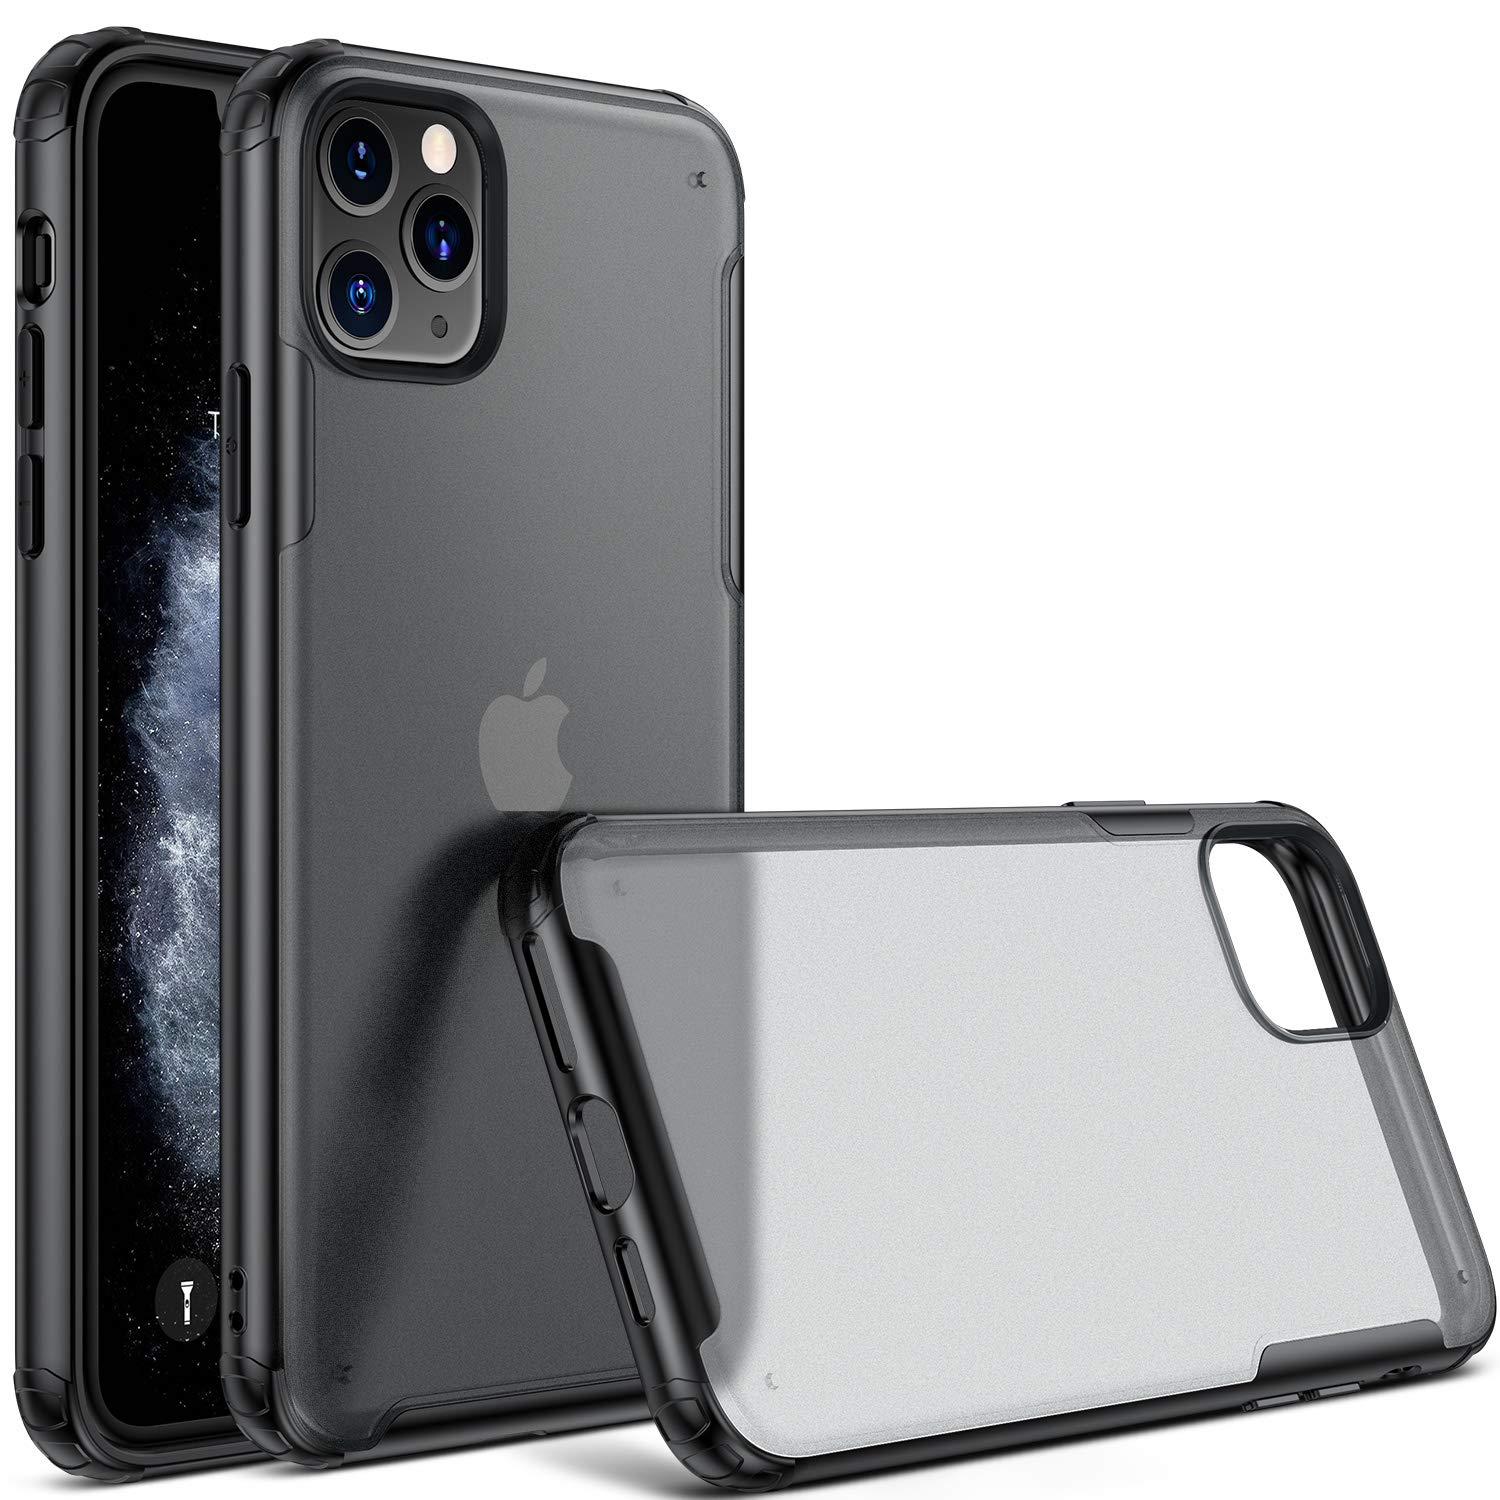 CASEKOO iPhone 11 Pro Max Case, Protective Matte Clear Heavy Duty Slim Case with Hard Back Thin Case for iPhone 11 Pro Max 6.5 inch 2019- Black